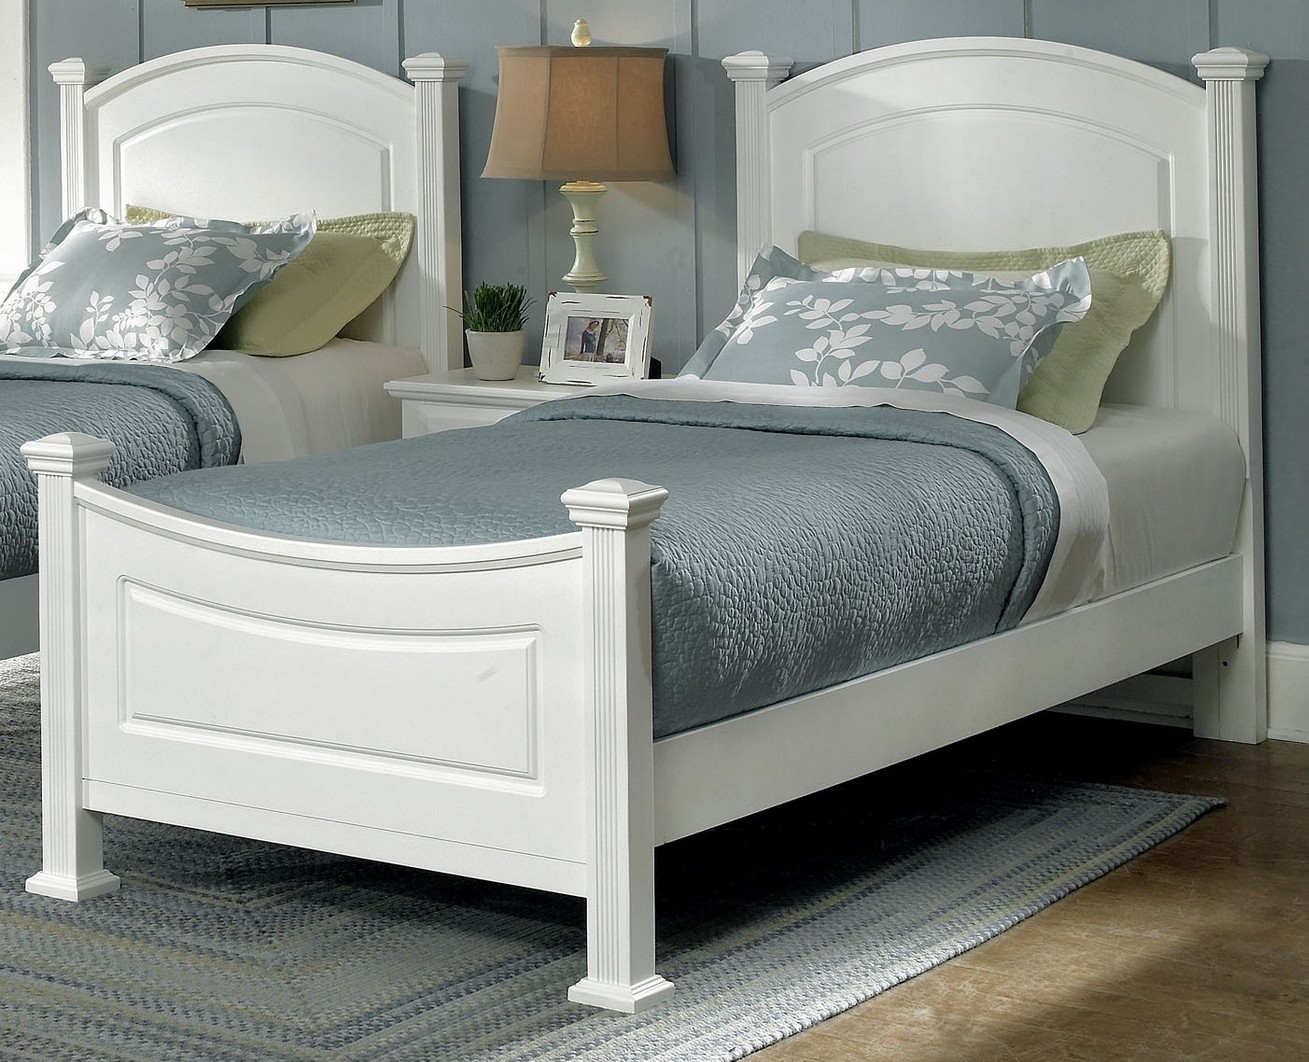 Vaughan Basset Hamilton Franklin Twin Panel Bed In Snow White